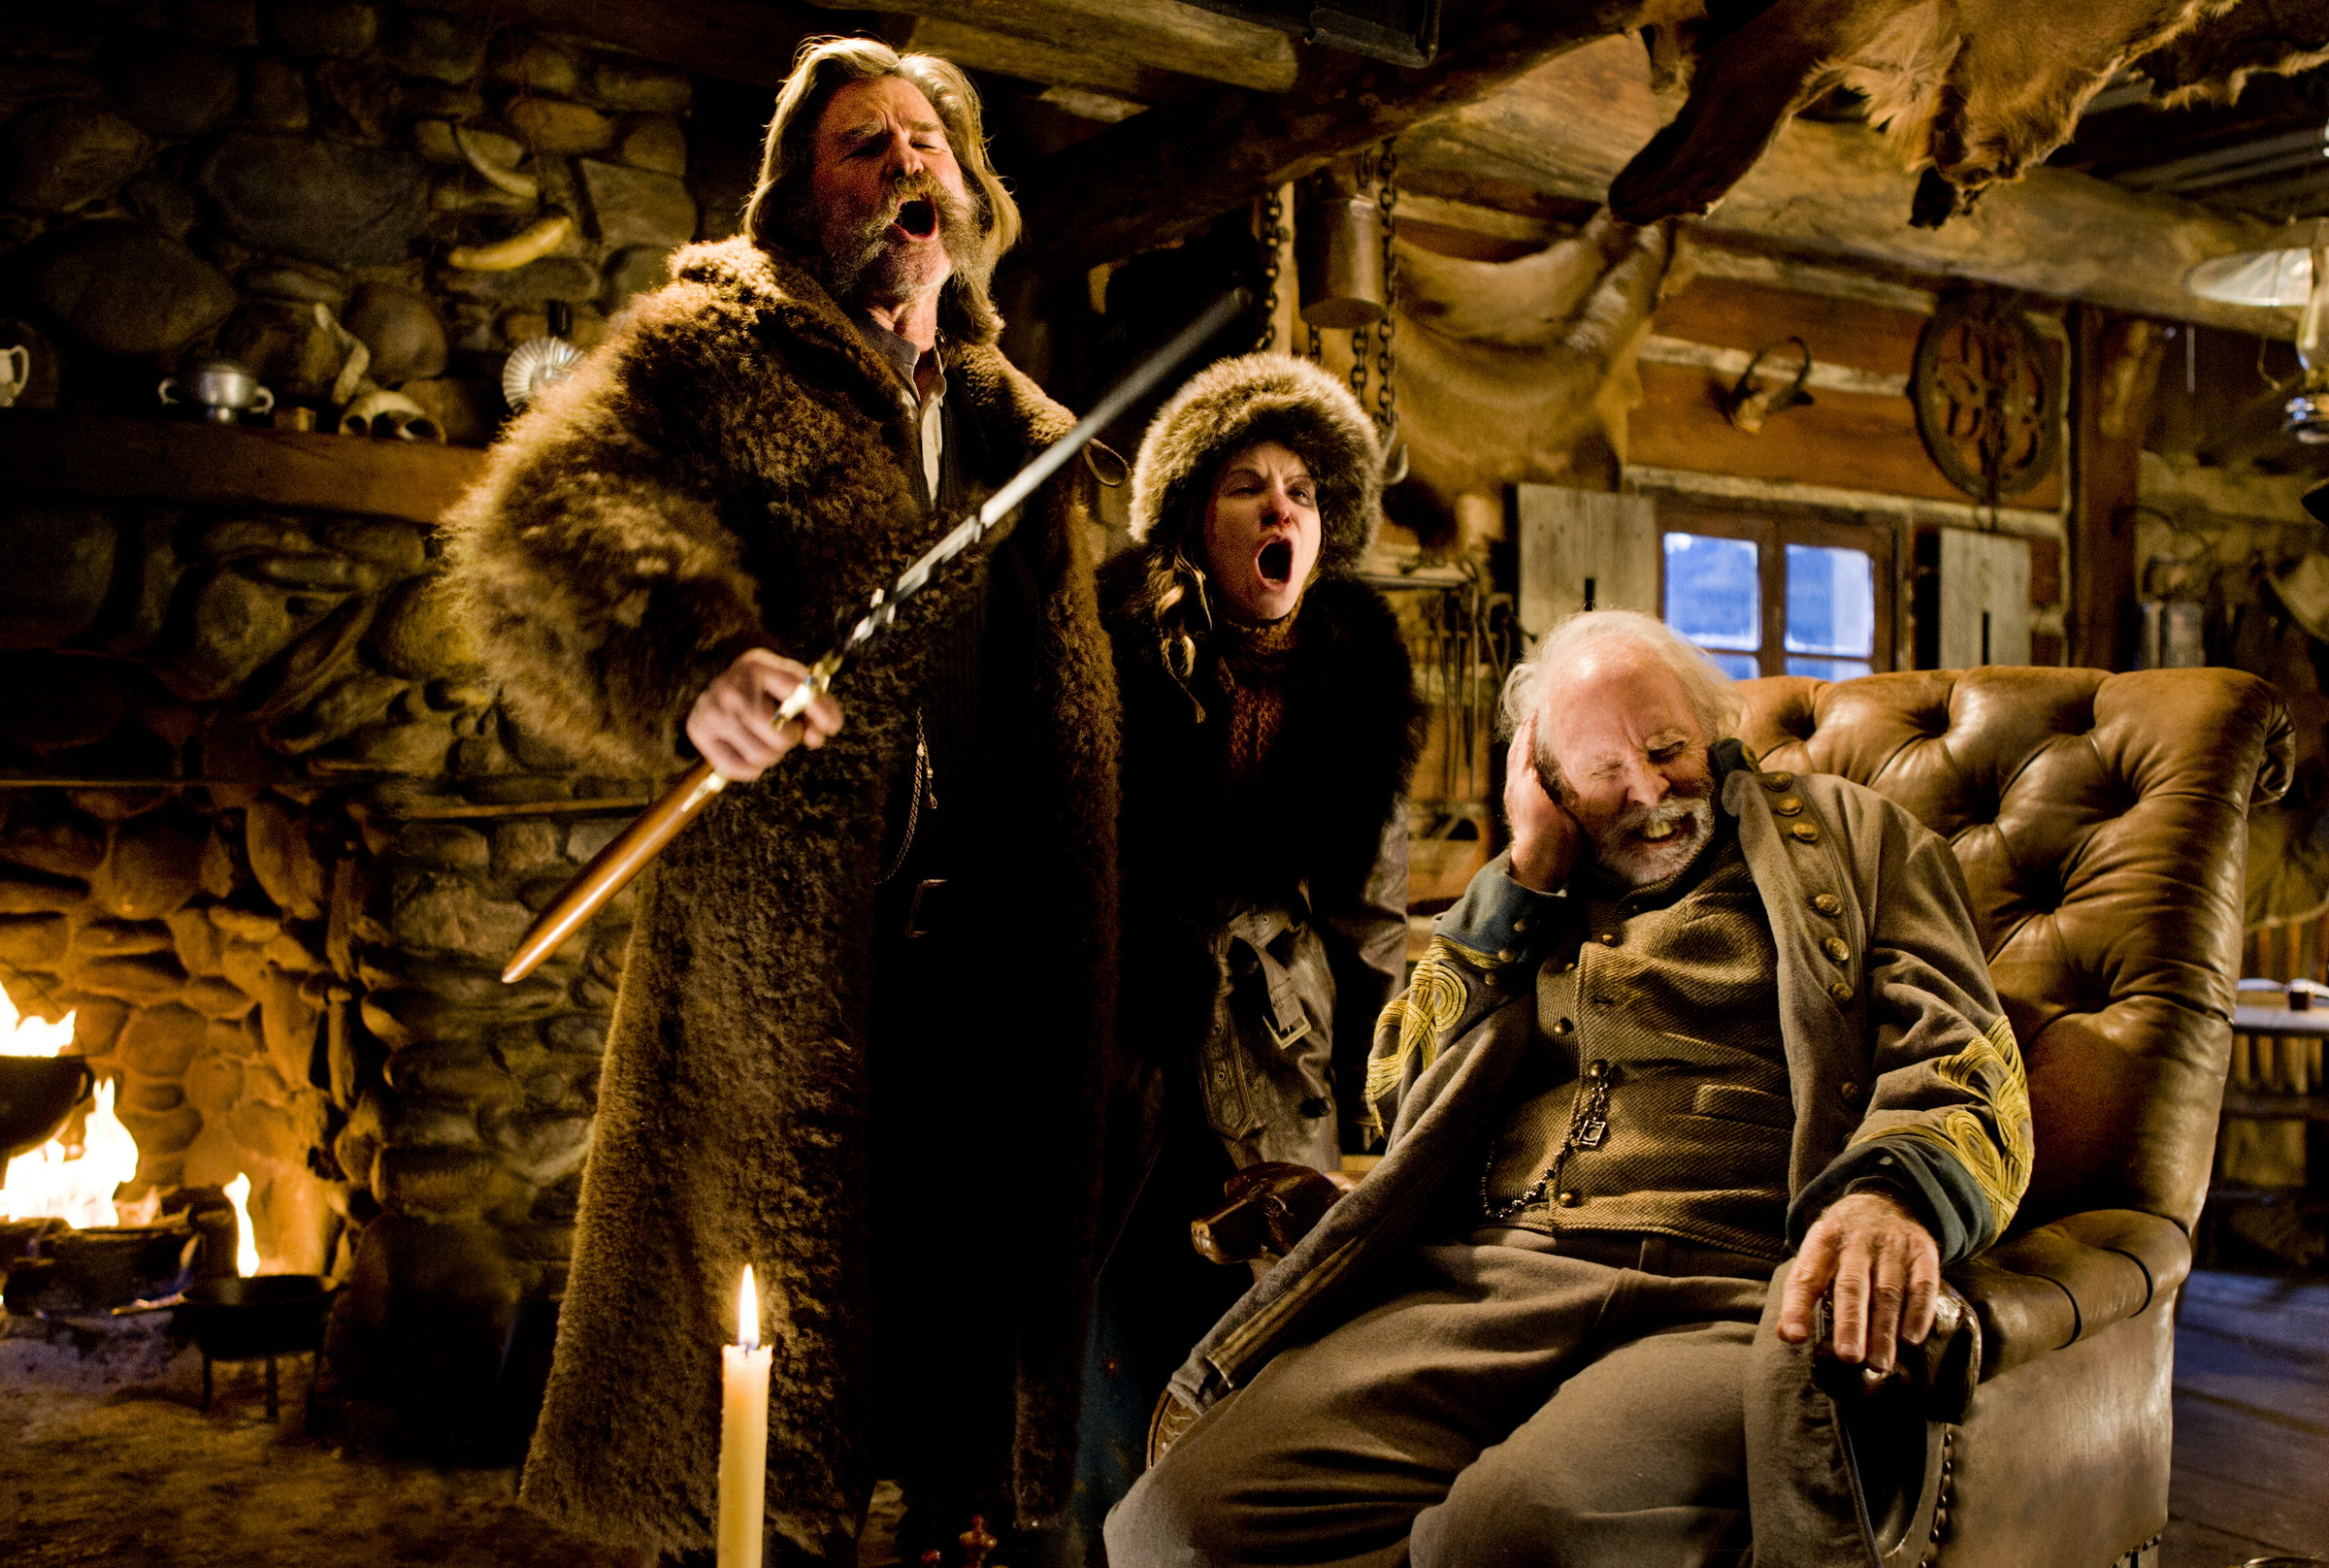 The_Hateful_Eight_Quentin_Tarantino-Film-Película-2015-2016-los-odiosos-ocho